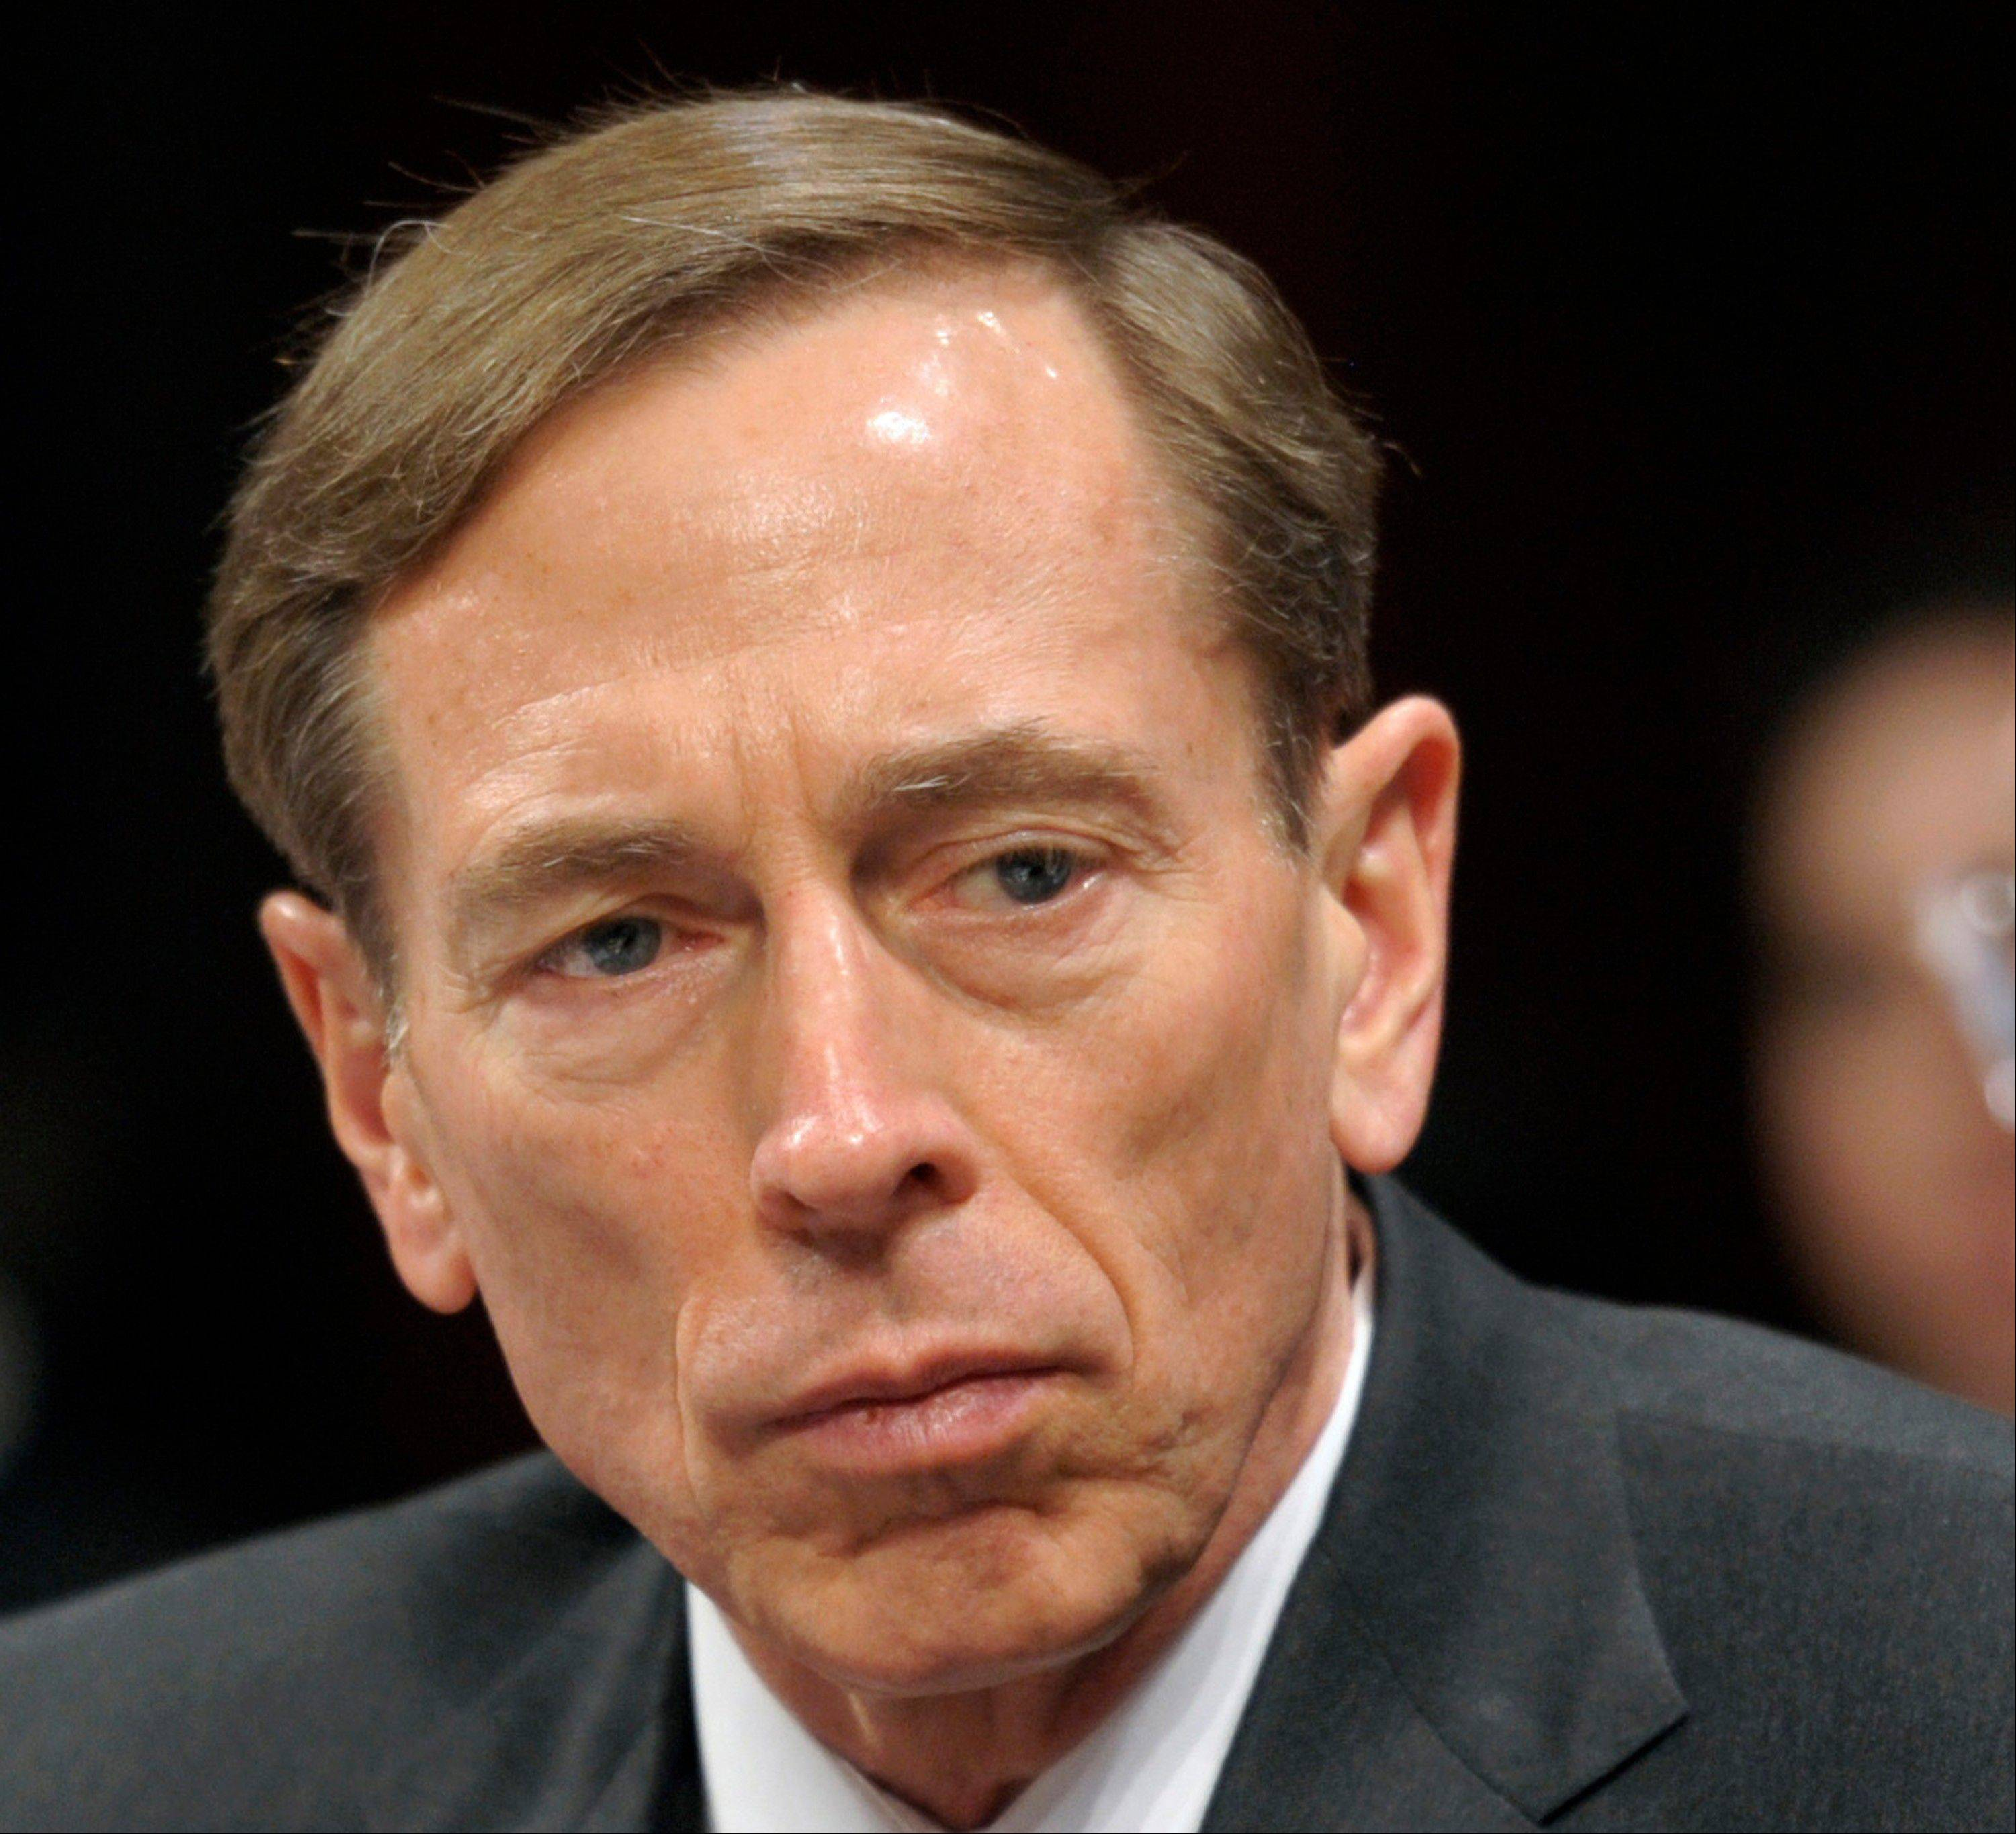 Ex-CIA Director David Petraeus